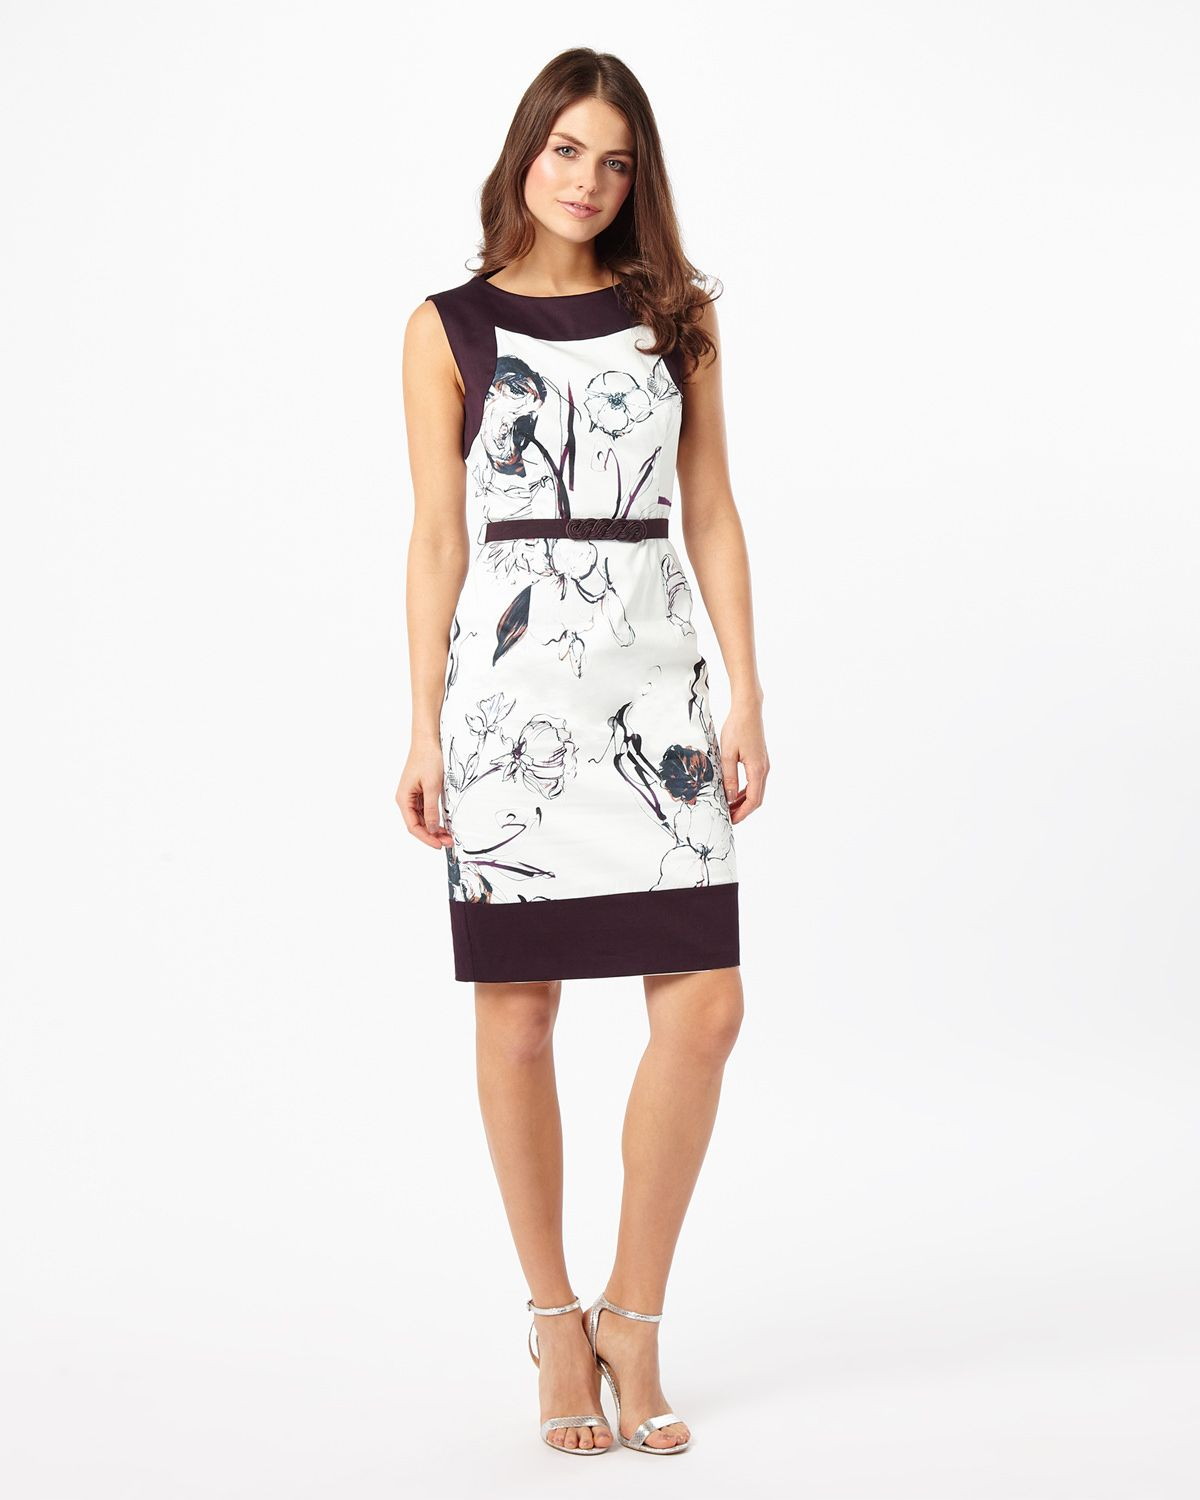 A fitted stretch cotton dress in an abstract floral print with